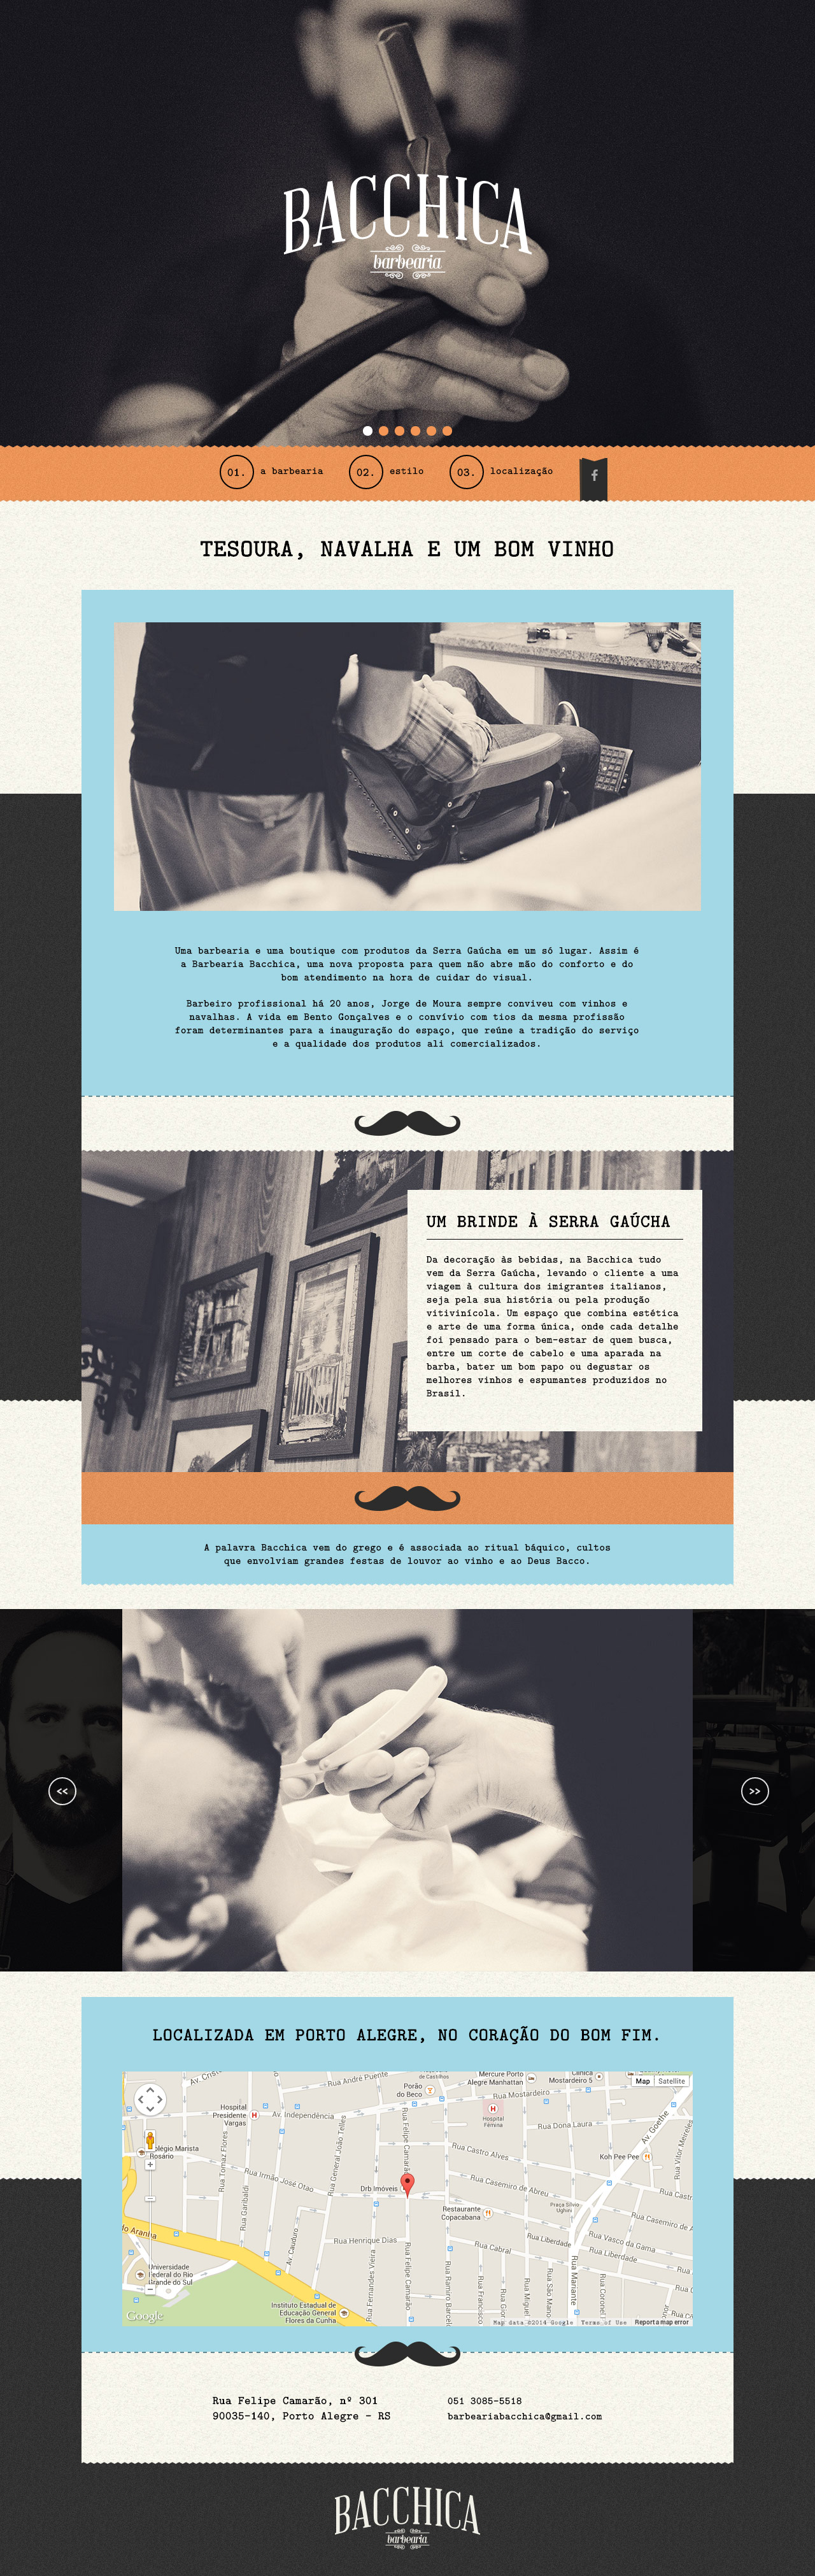 Bacchica Barbearia Website Screenshot